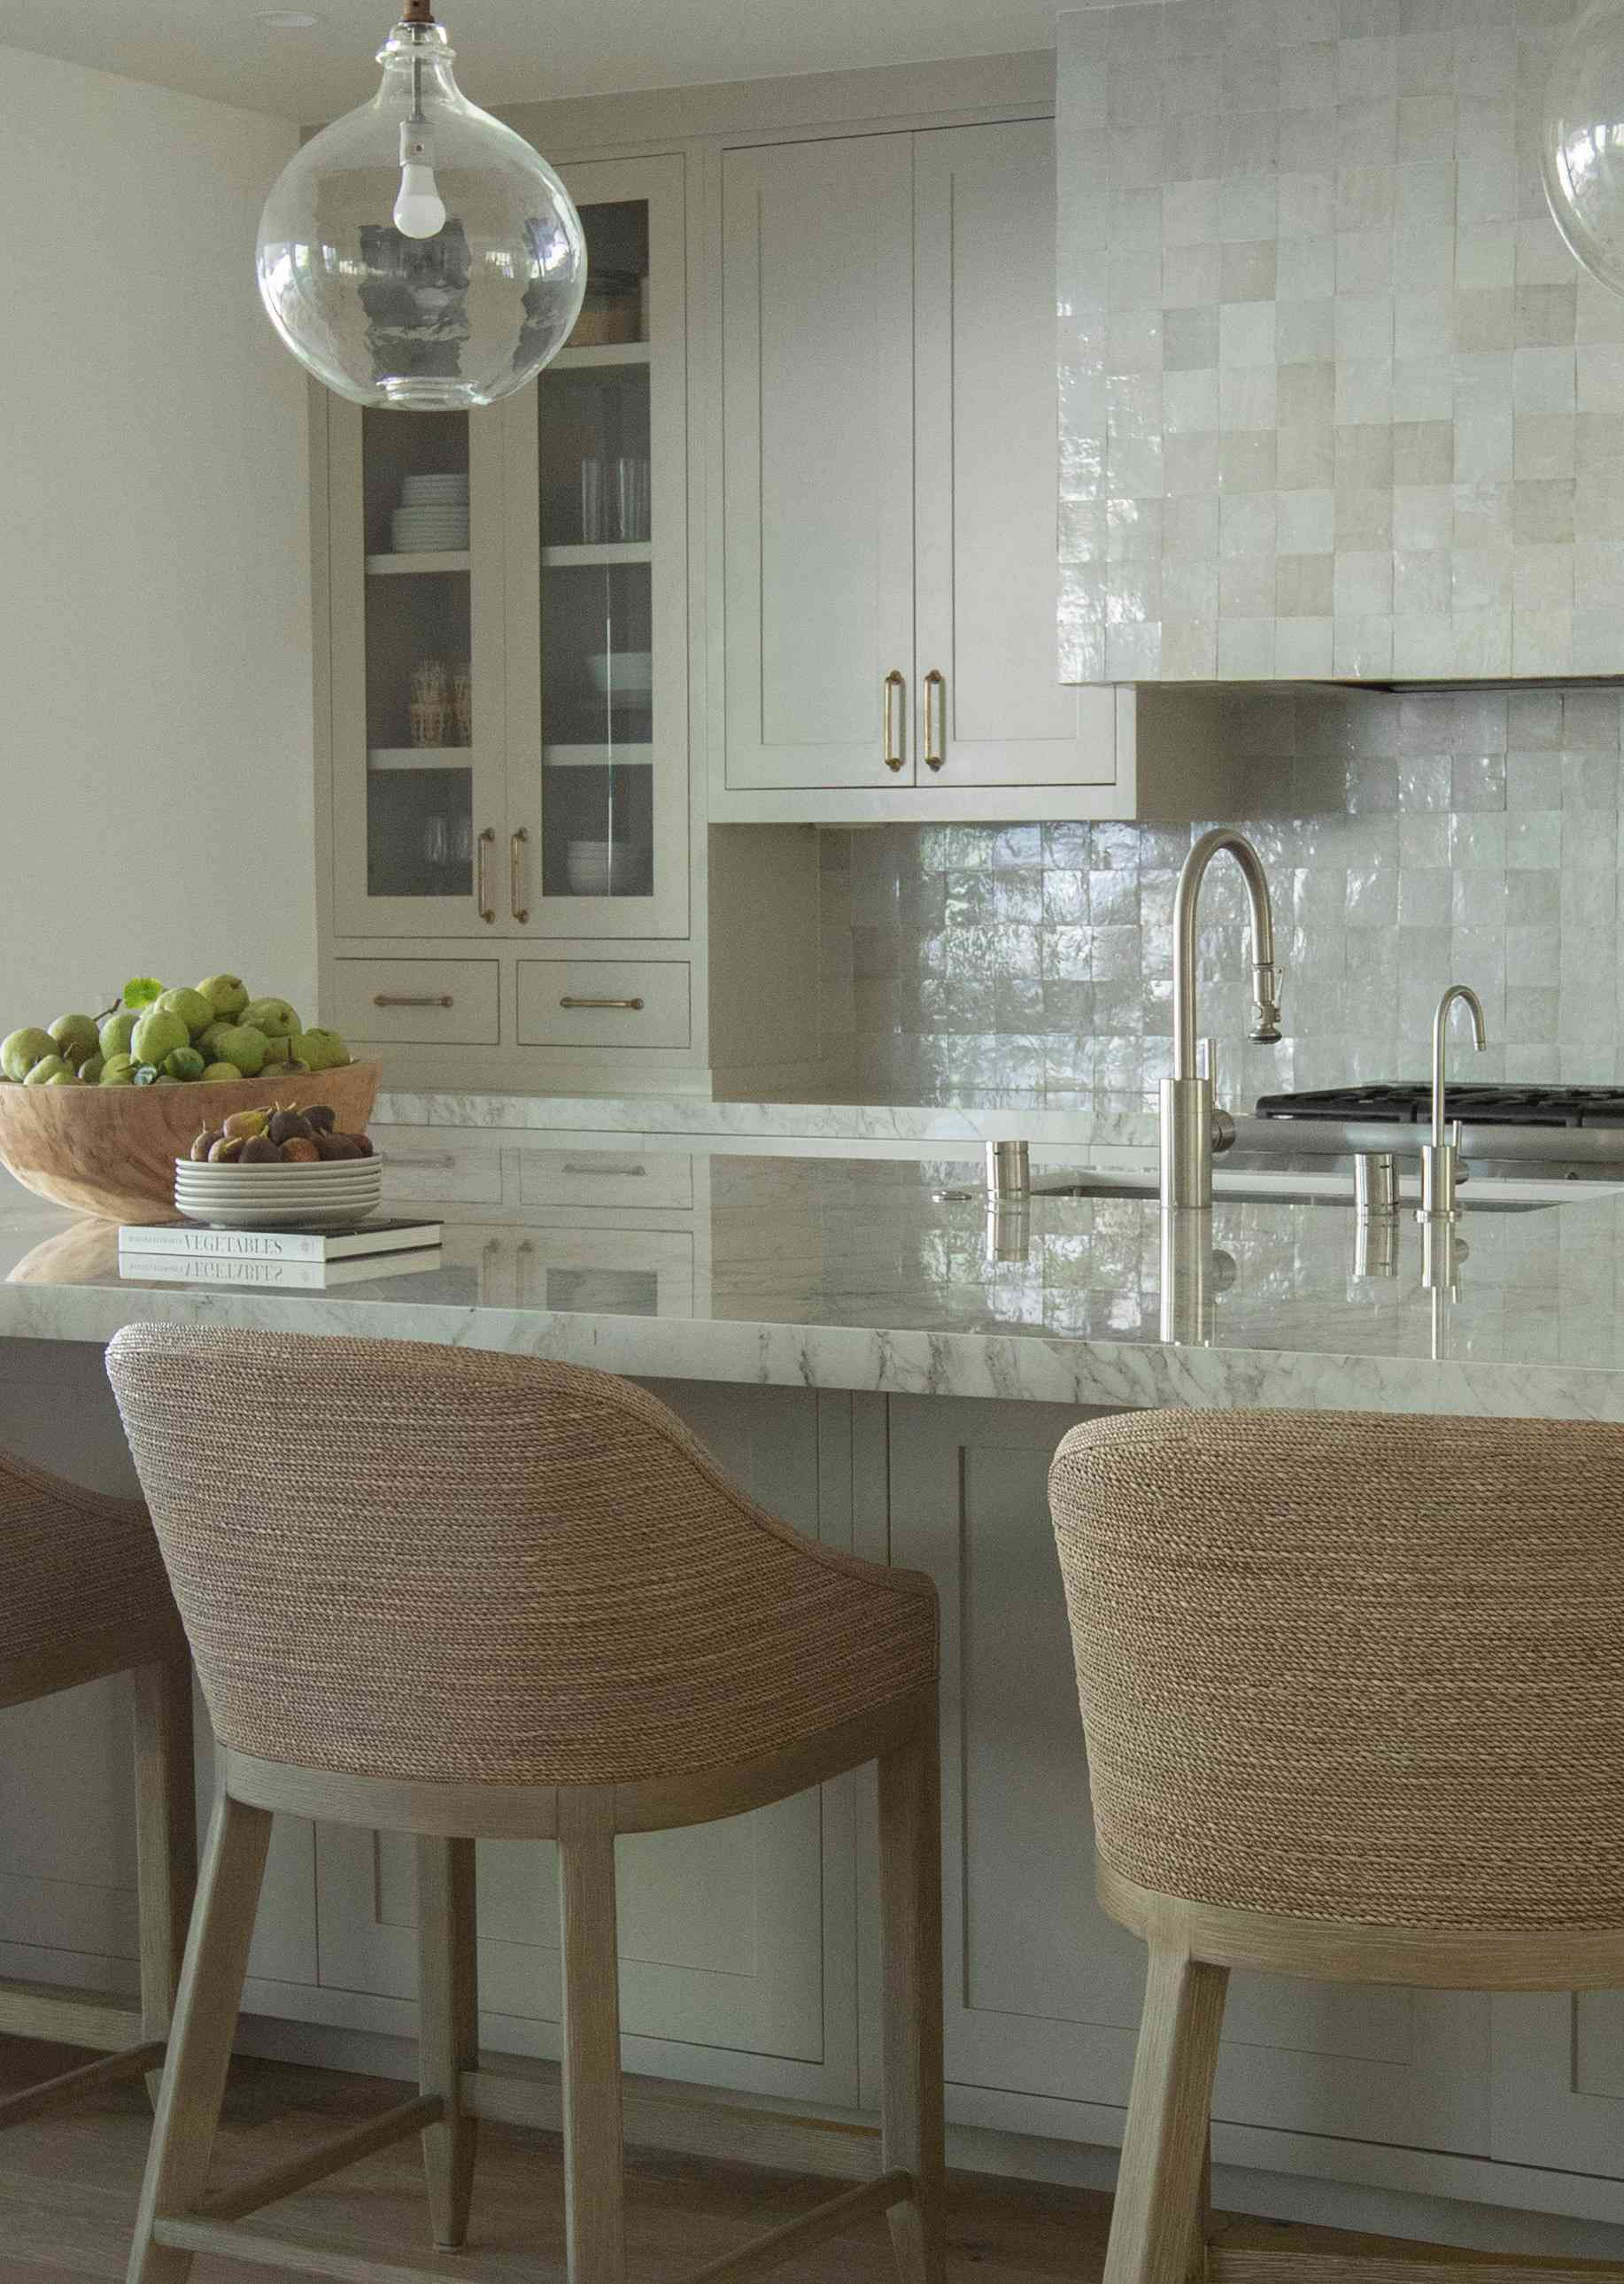 Close up of marble island and jute barstools.